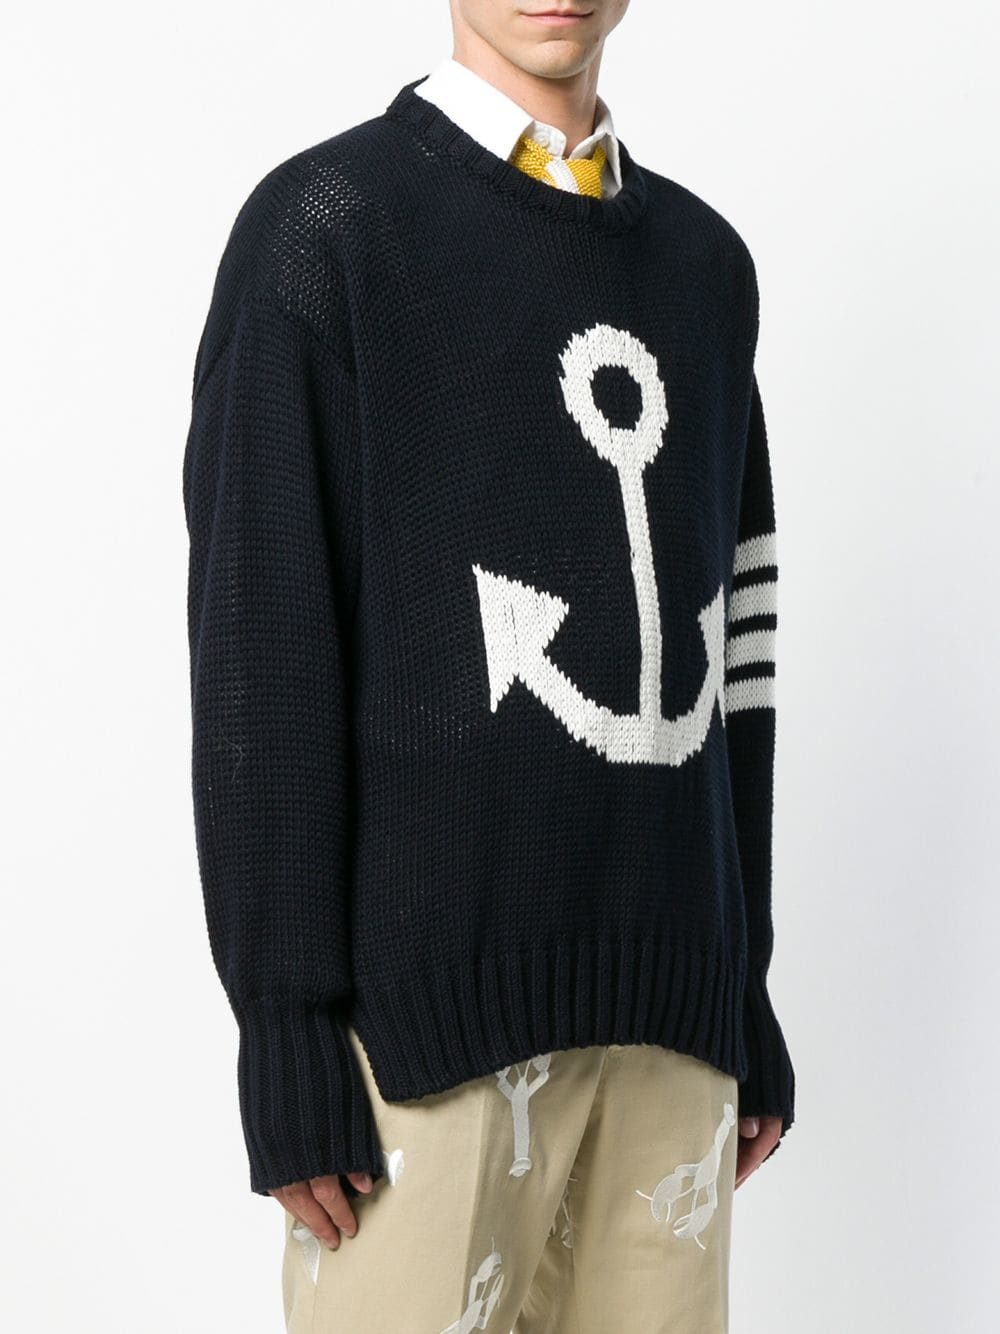 THOM BROWNE MEN ANCHOR ICON INTARSIA OVERSIZED CREW NECK 11 PULLOVER IN COTTON